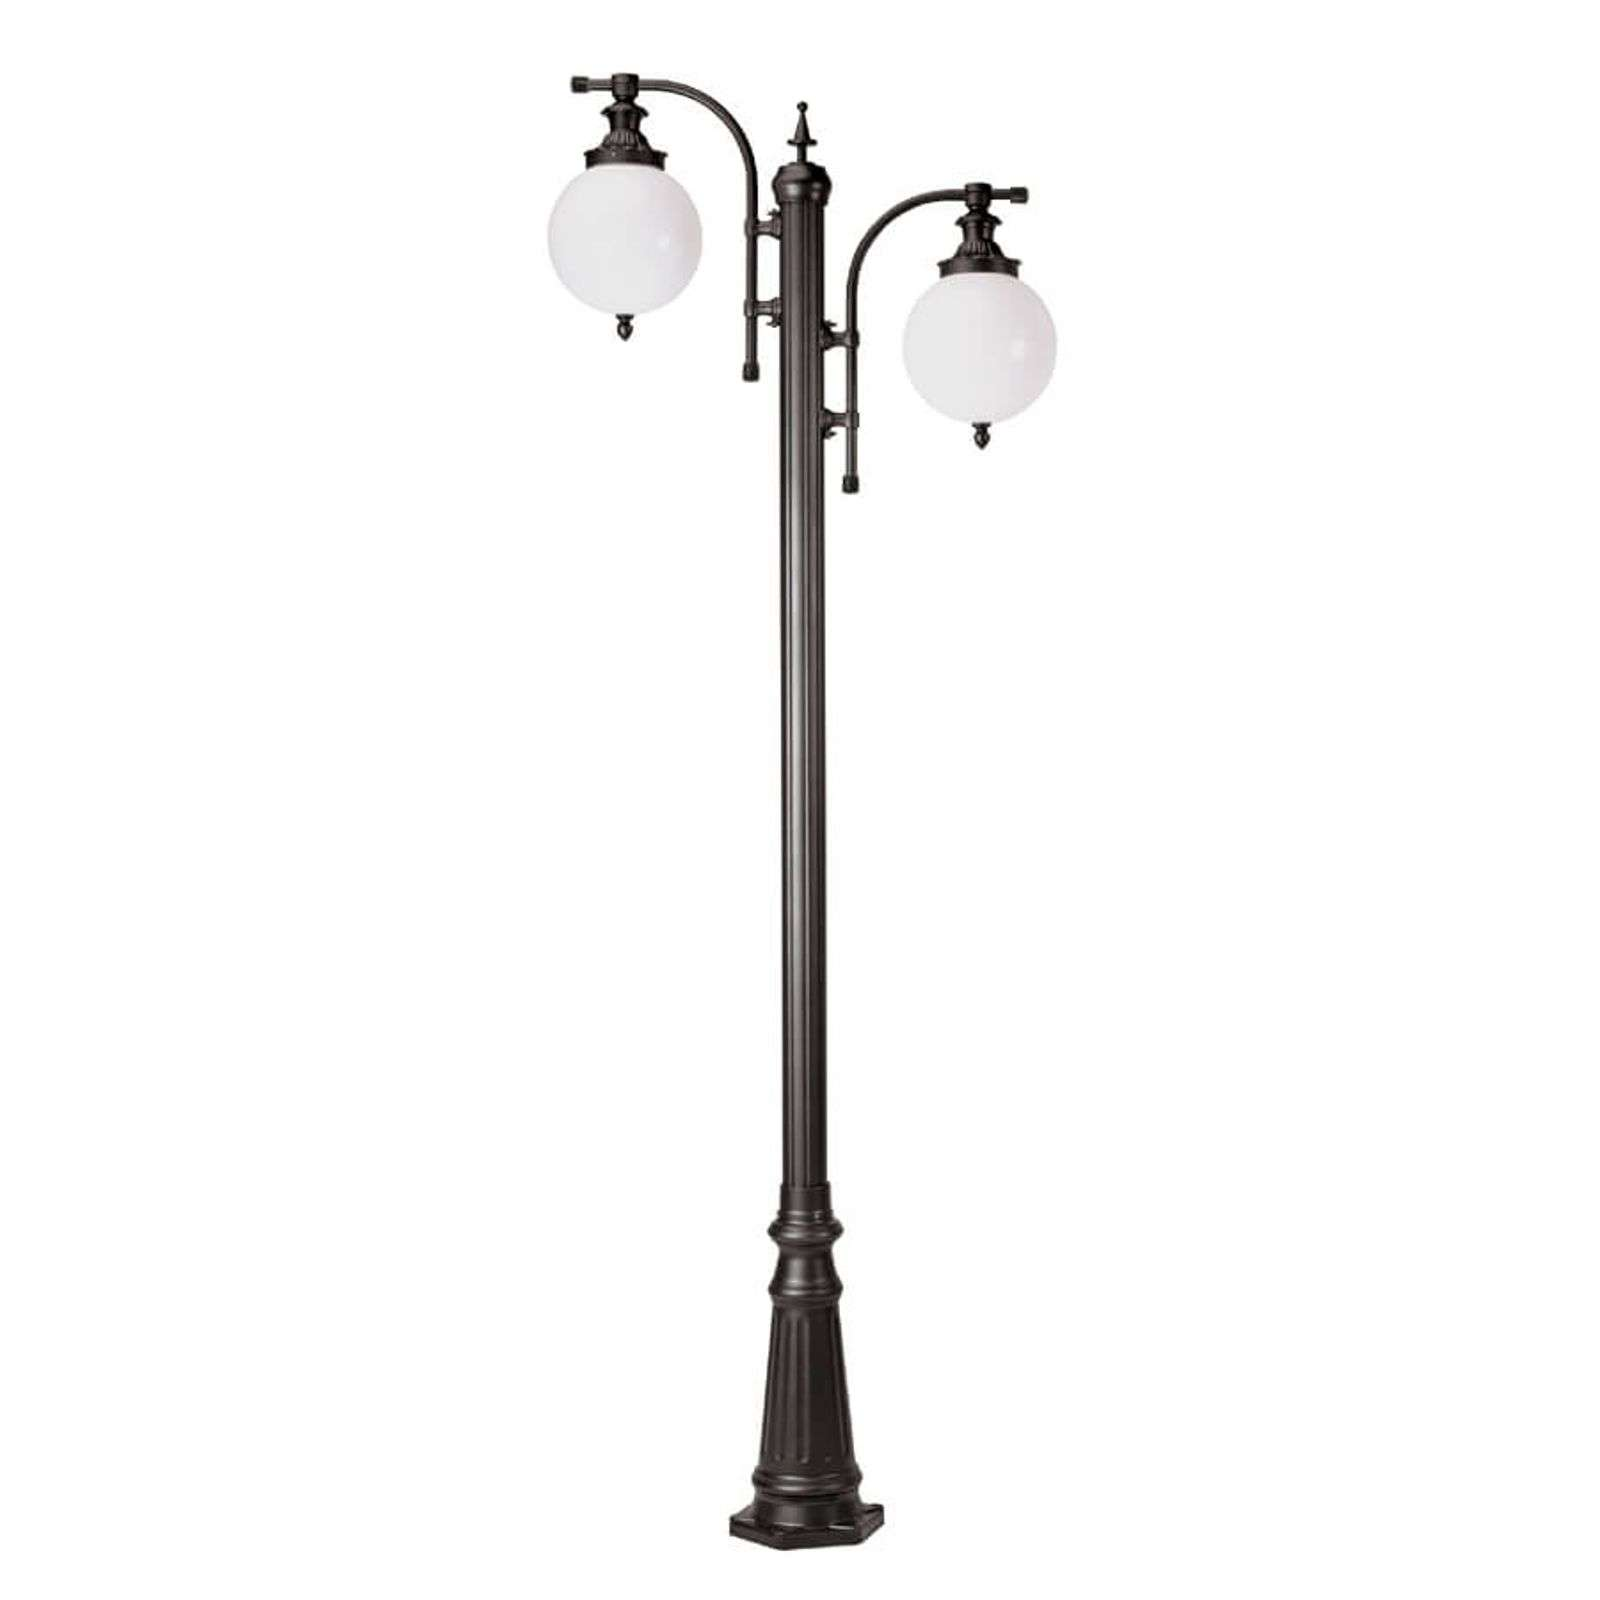 Lampadaire Madeira anthracite à 2 lampes